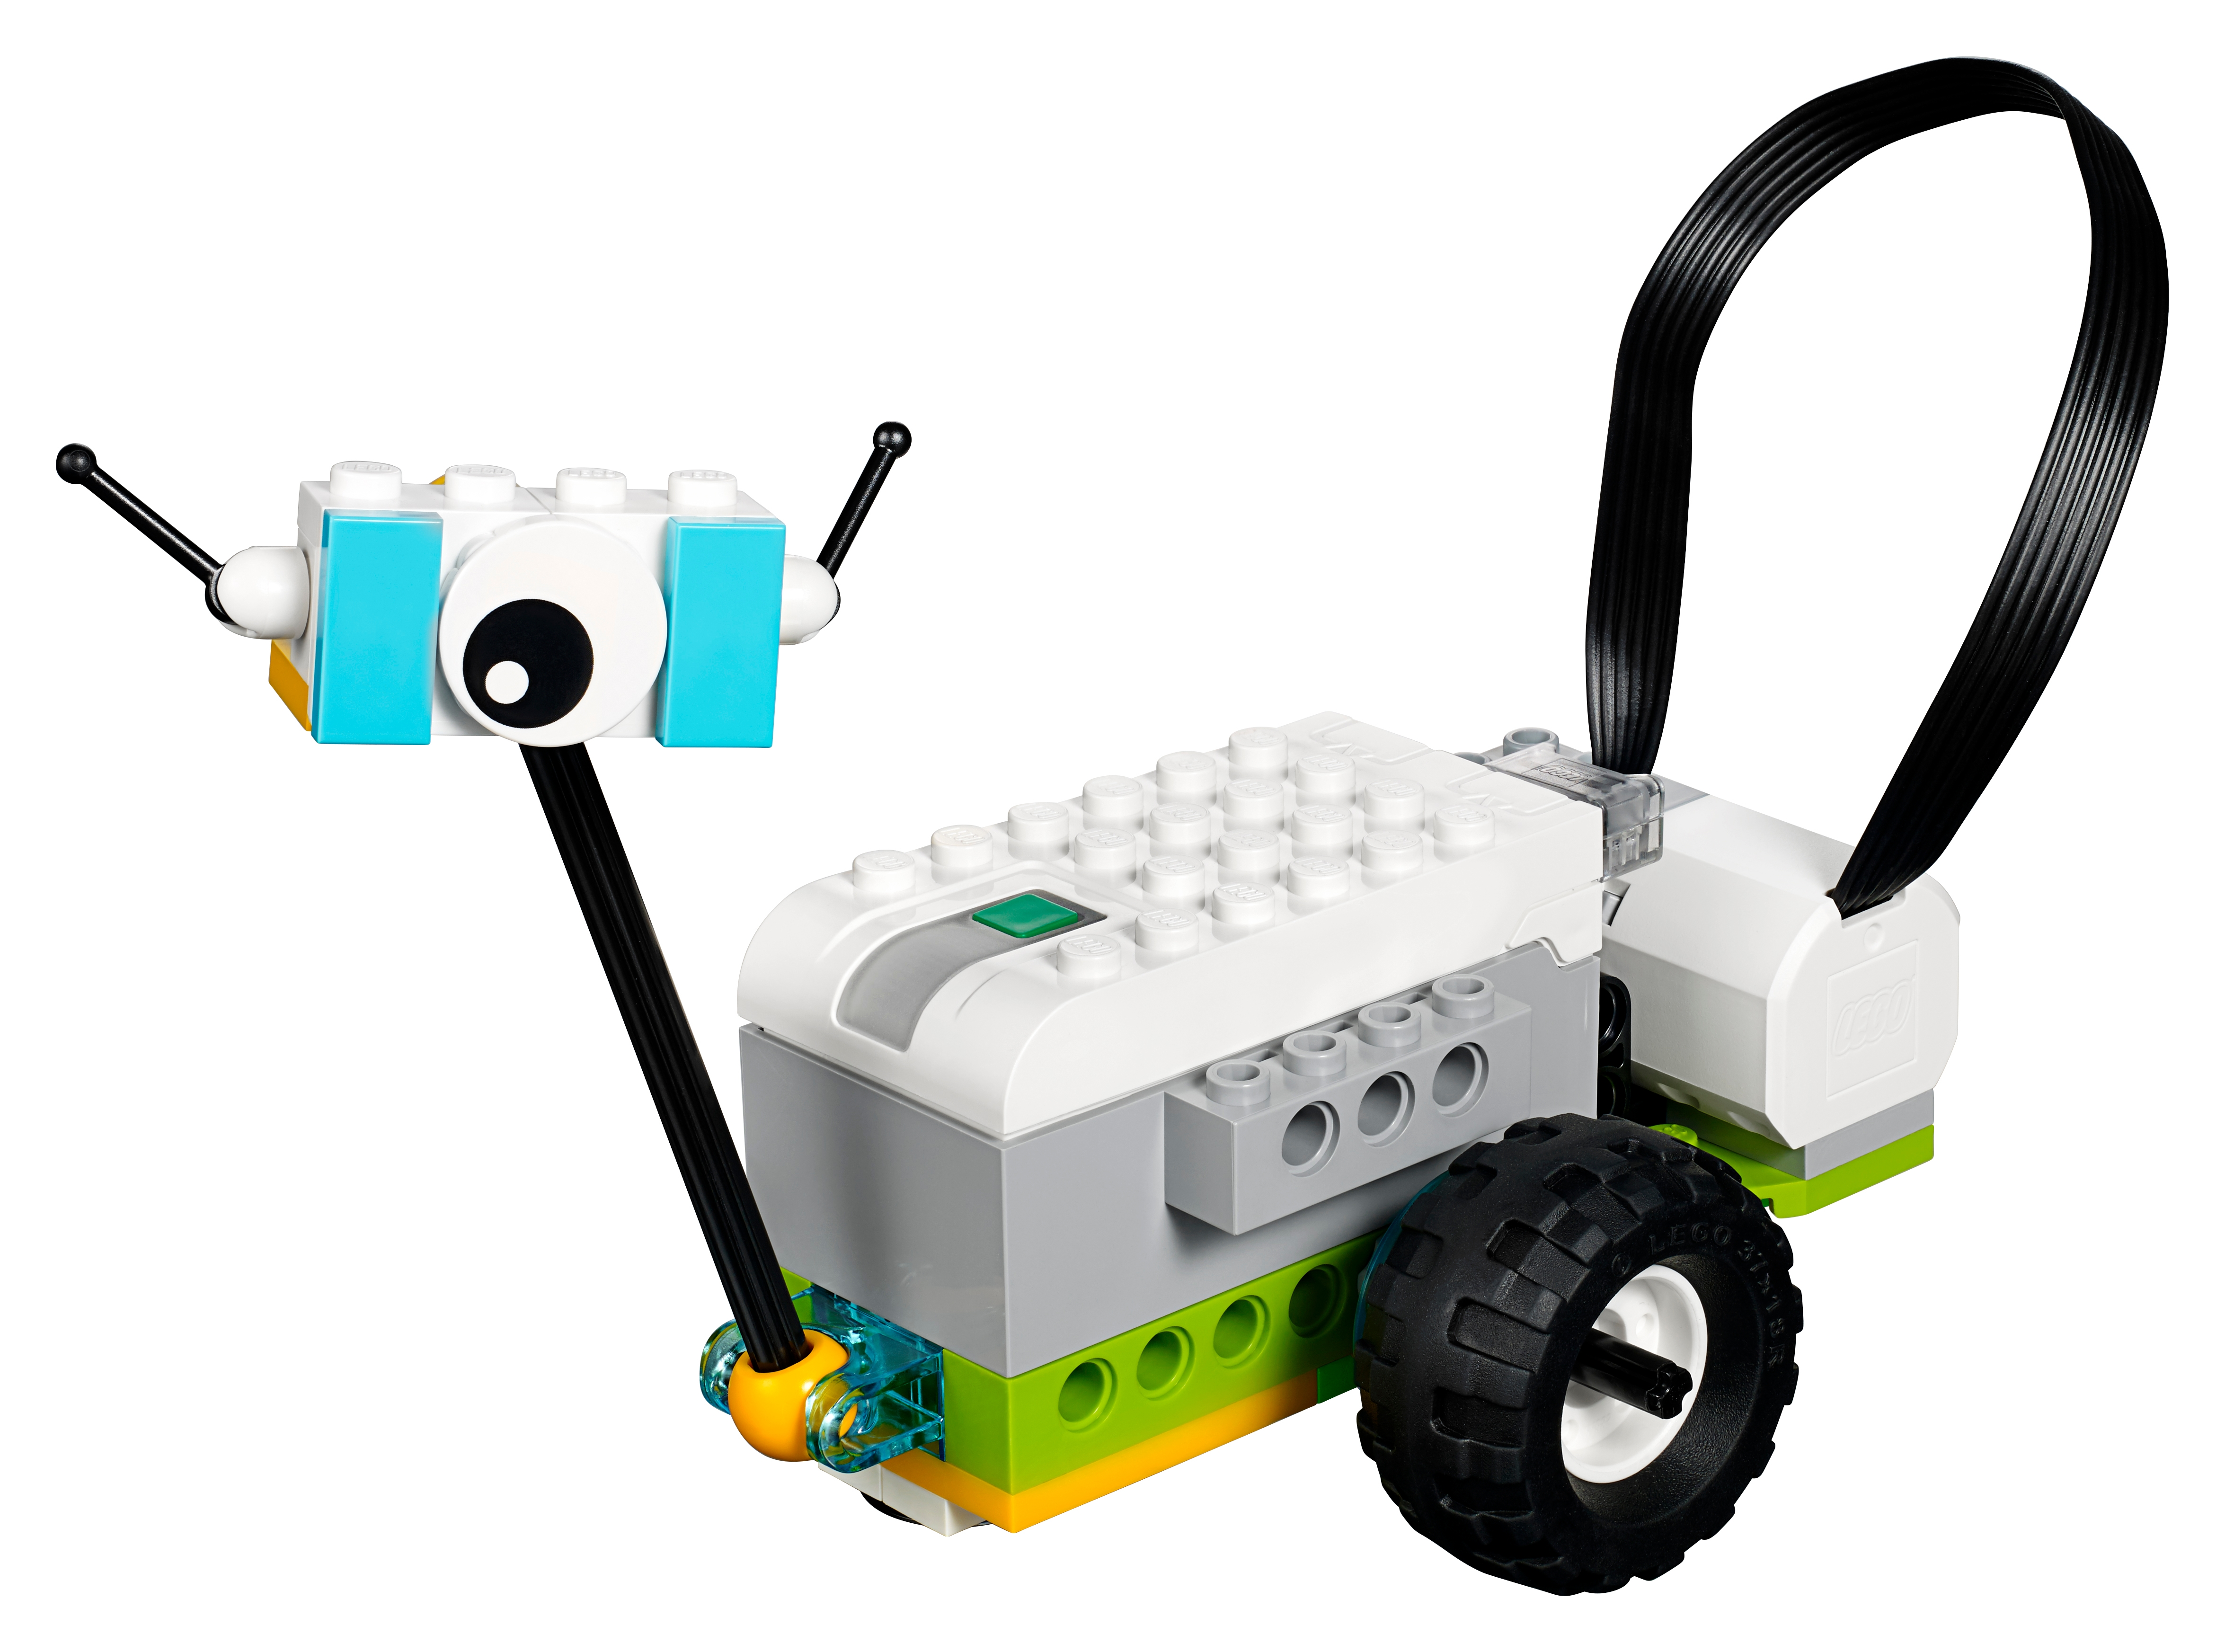 Wedo 2 0 Software Download Lego Education